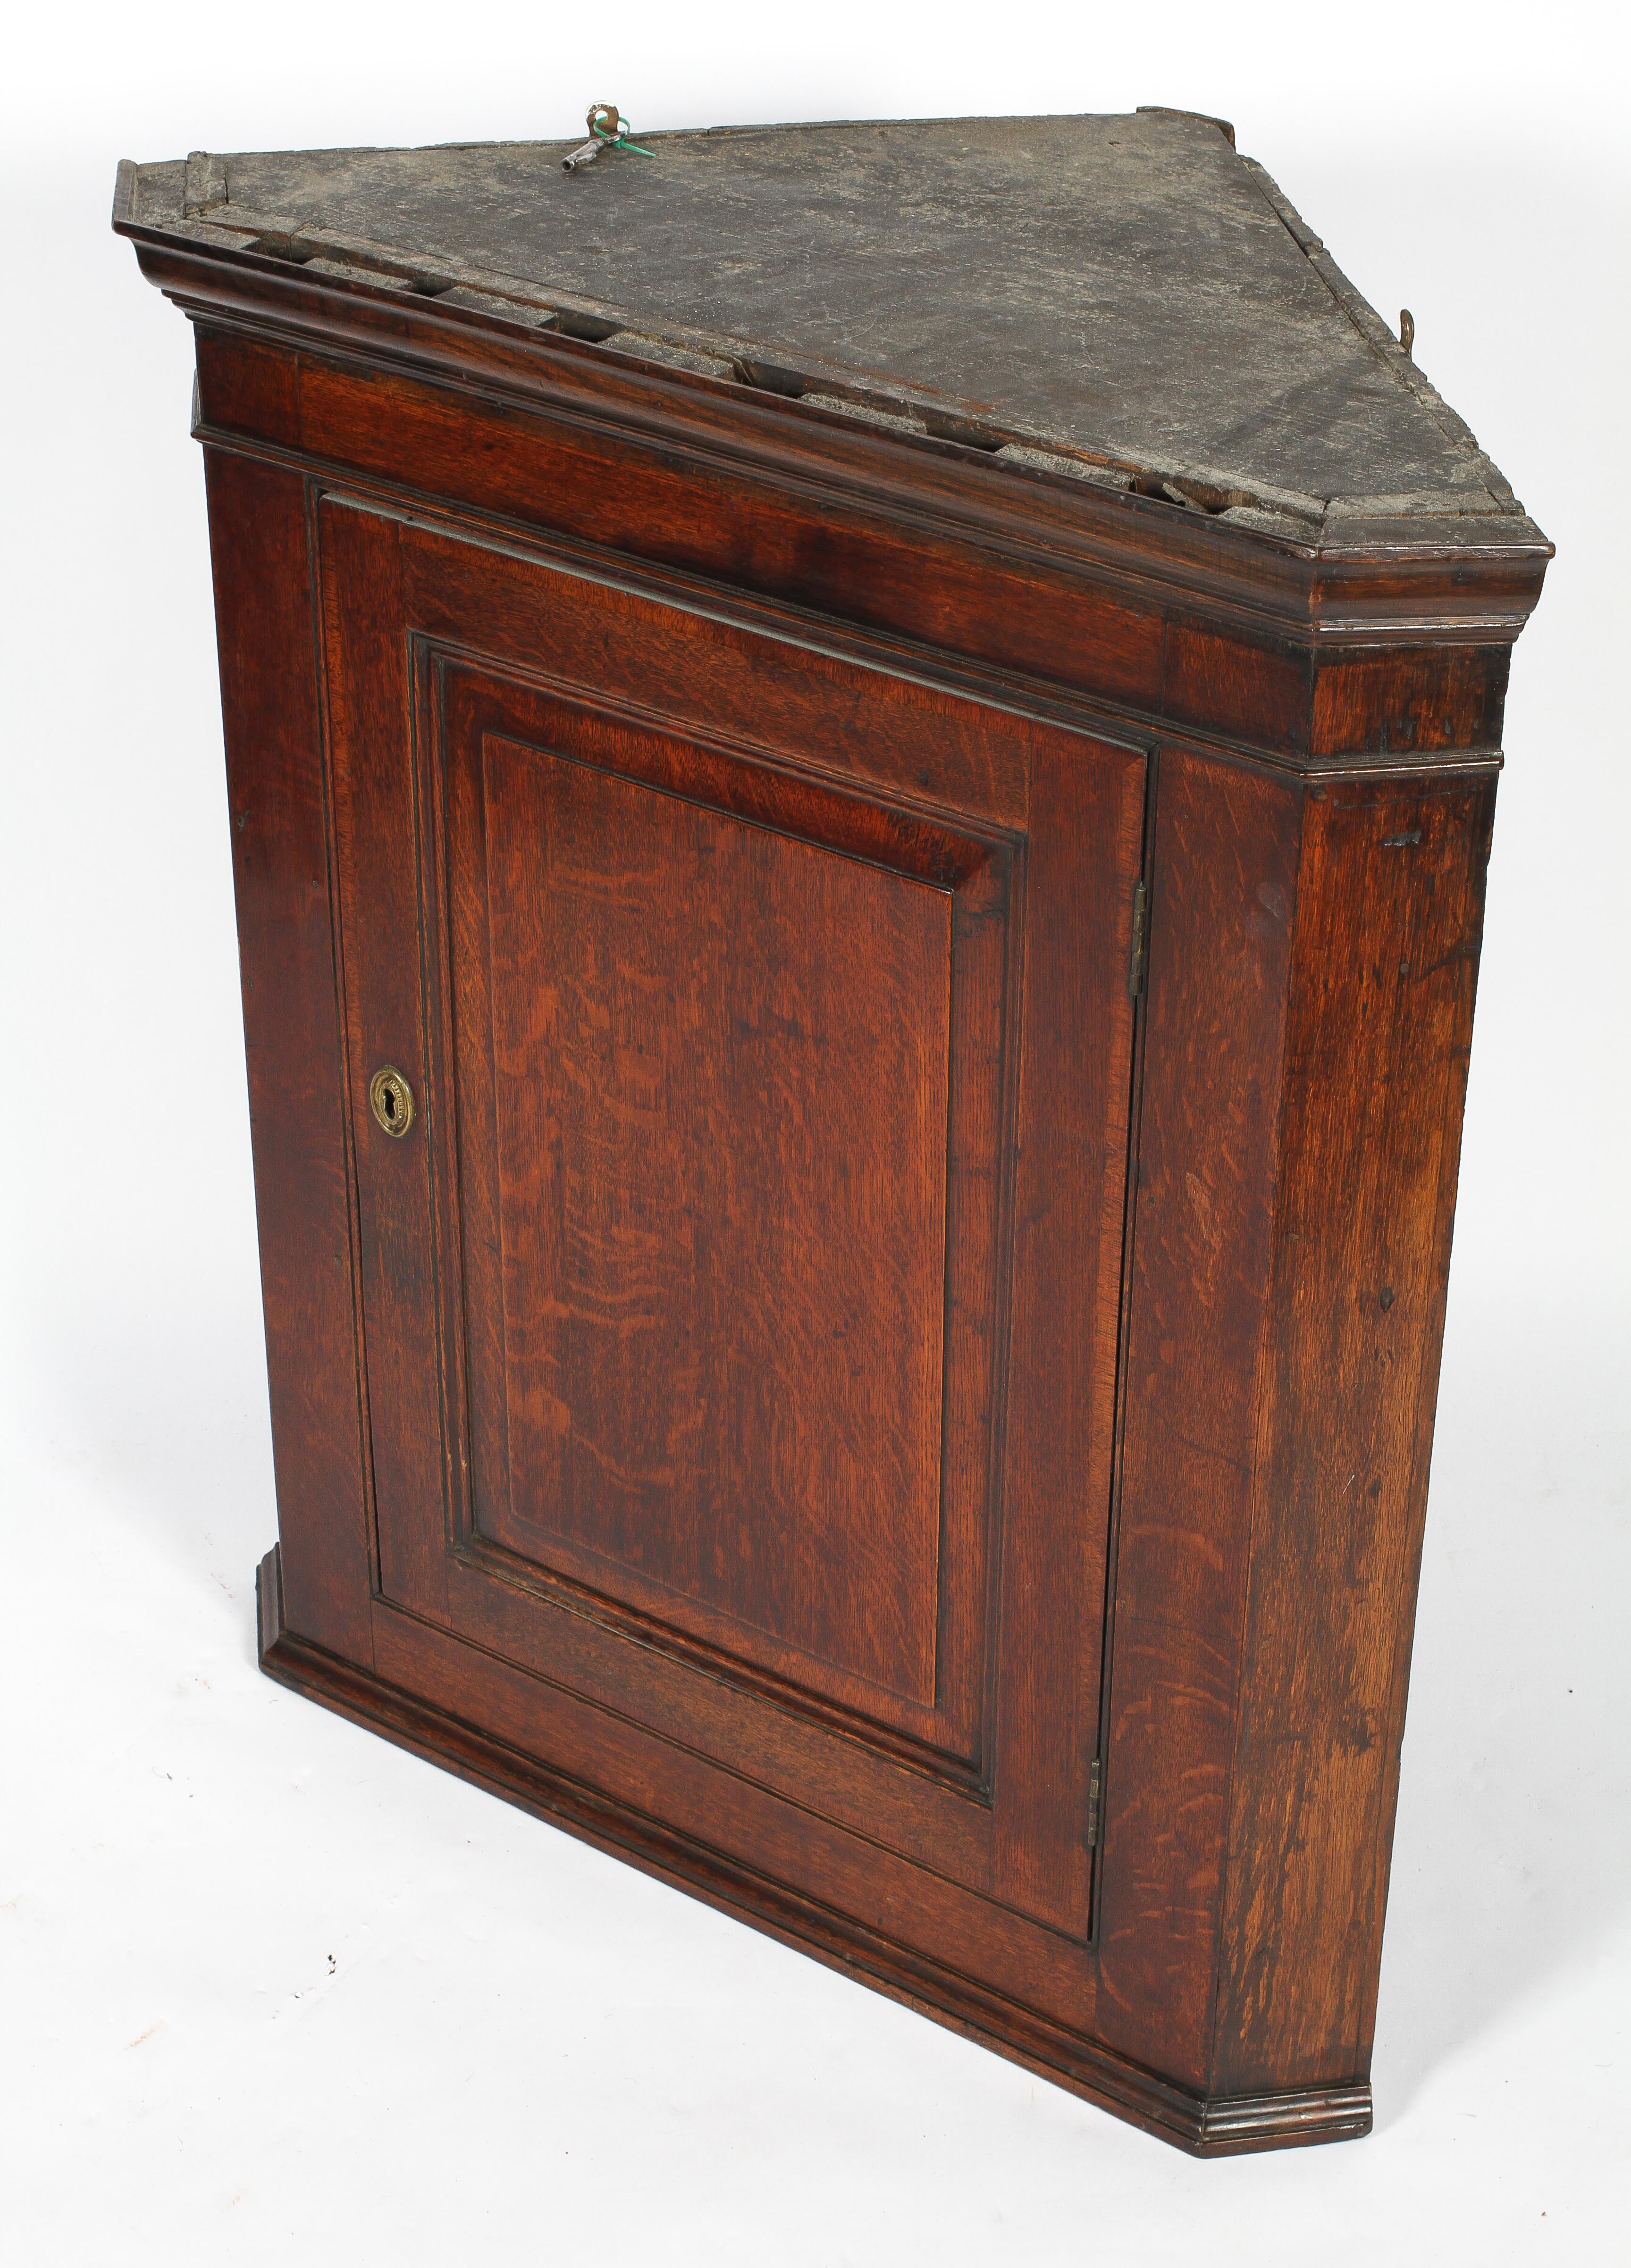 An 18th century oak corner cupboard, with moulded cornice and panelled door, - Image 2 of 2